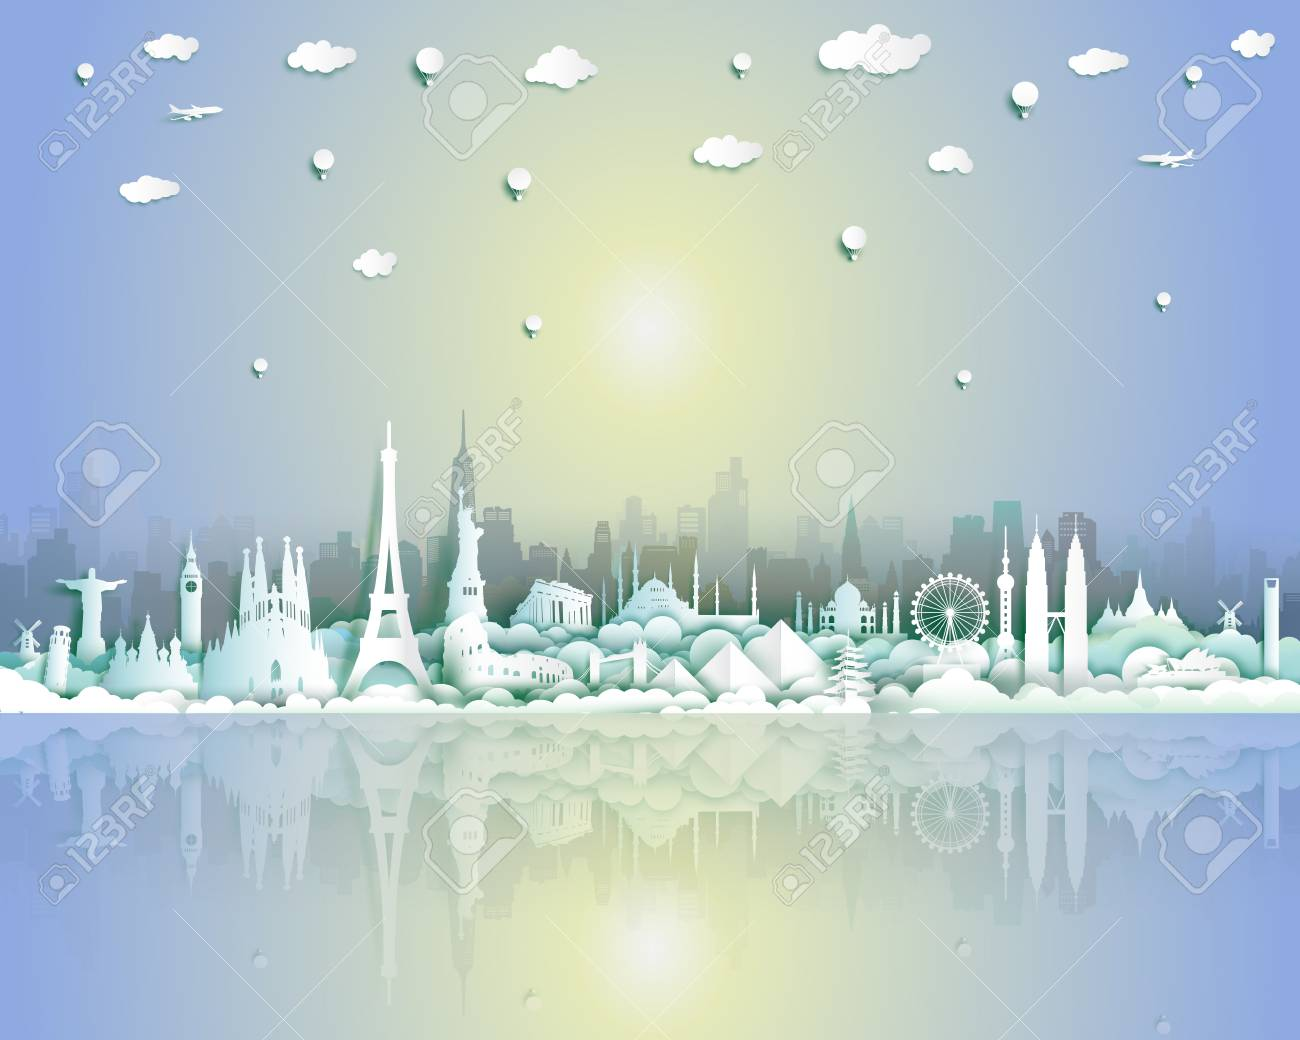 Landmarks of the world with city and seascape background, Travel around the world to France,England,Spain,Italy,Egypt,America,Europe and Asia with paper cut and style for travel poster and postcard. - 108643635